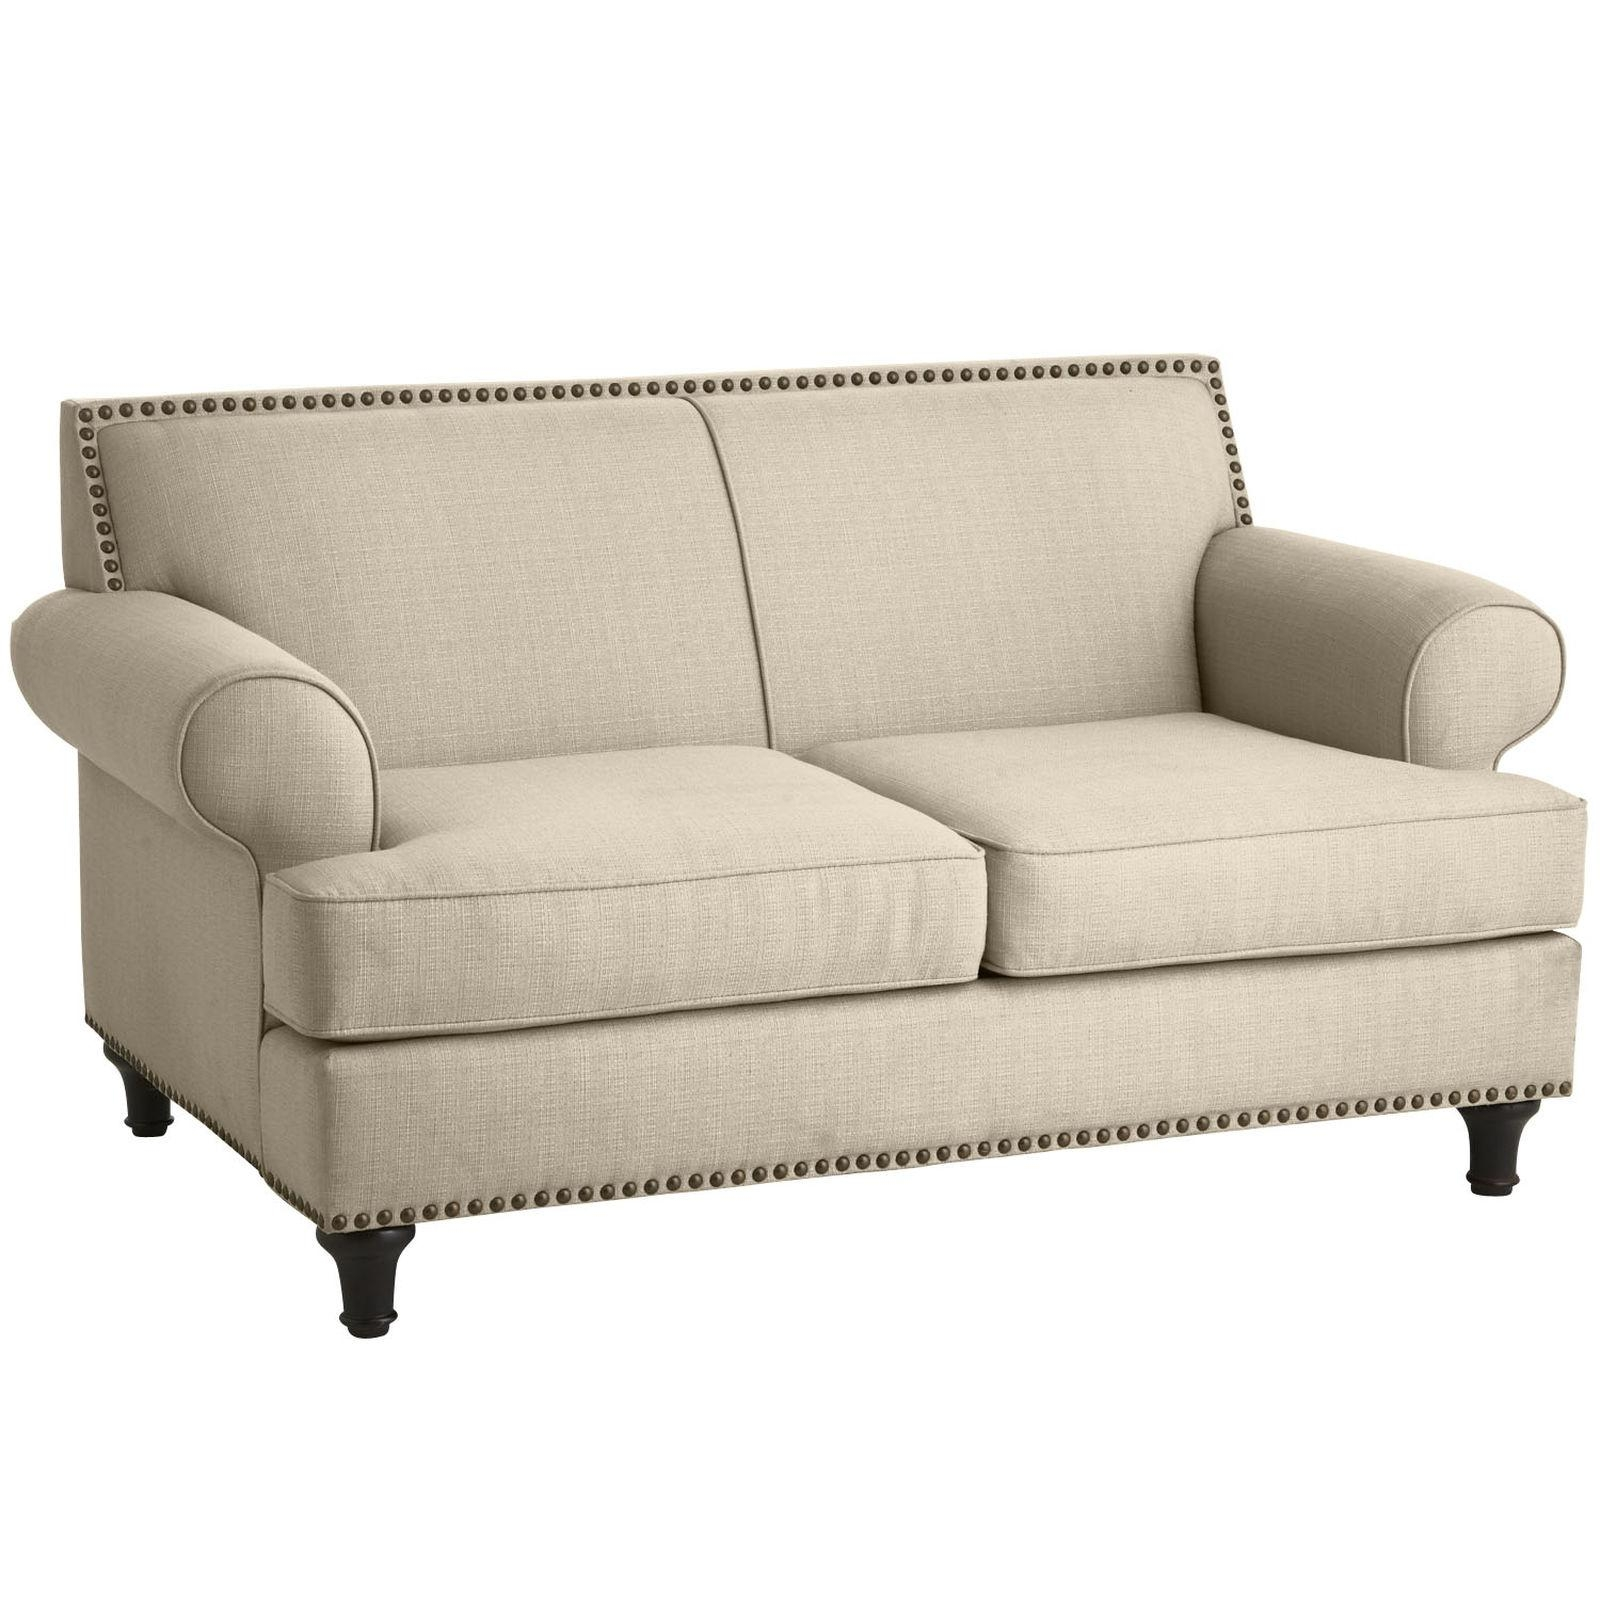 Furniture: Stunning Pier One Loveseat For Perfect Living Room For Pier 1 Sofas (Image 15 of 20)